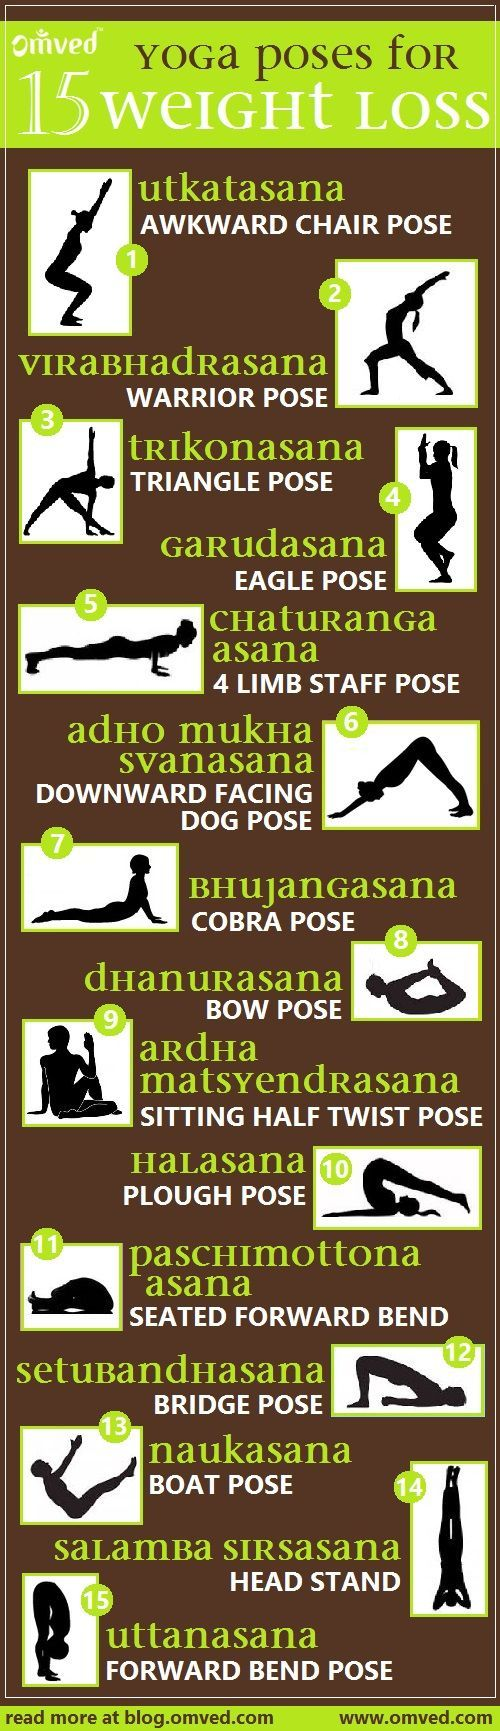 Check out Top 15 yoga poses for WEIGHT LOSS - Although Yoga is not always the popular choi...